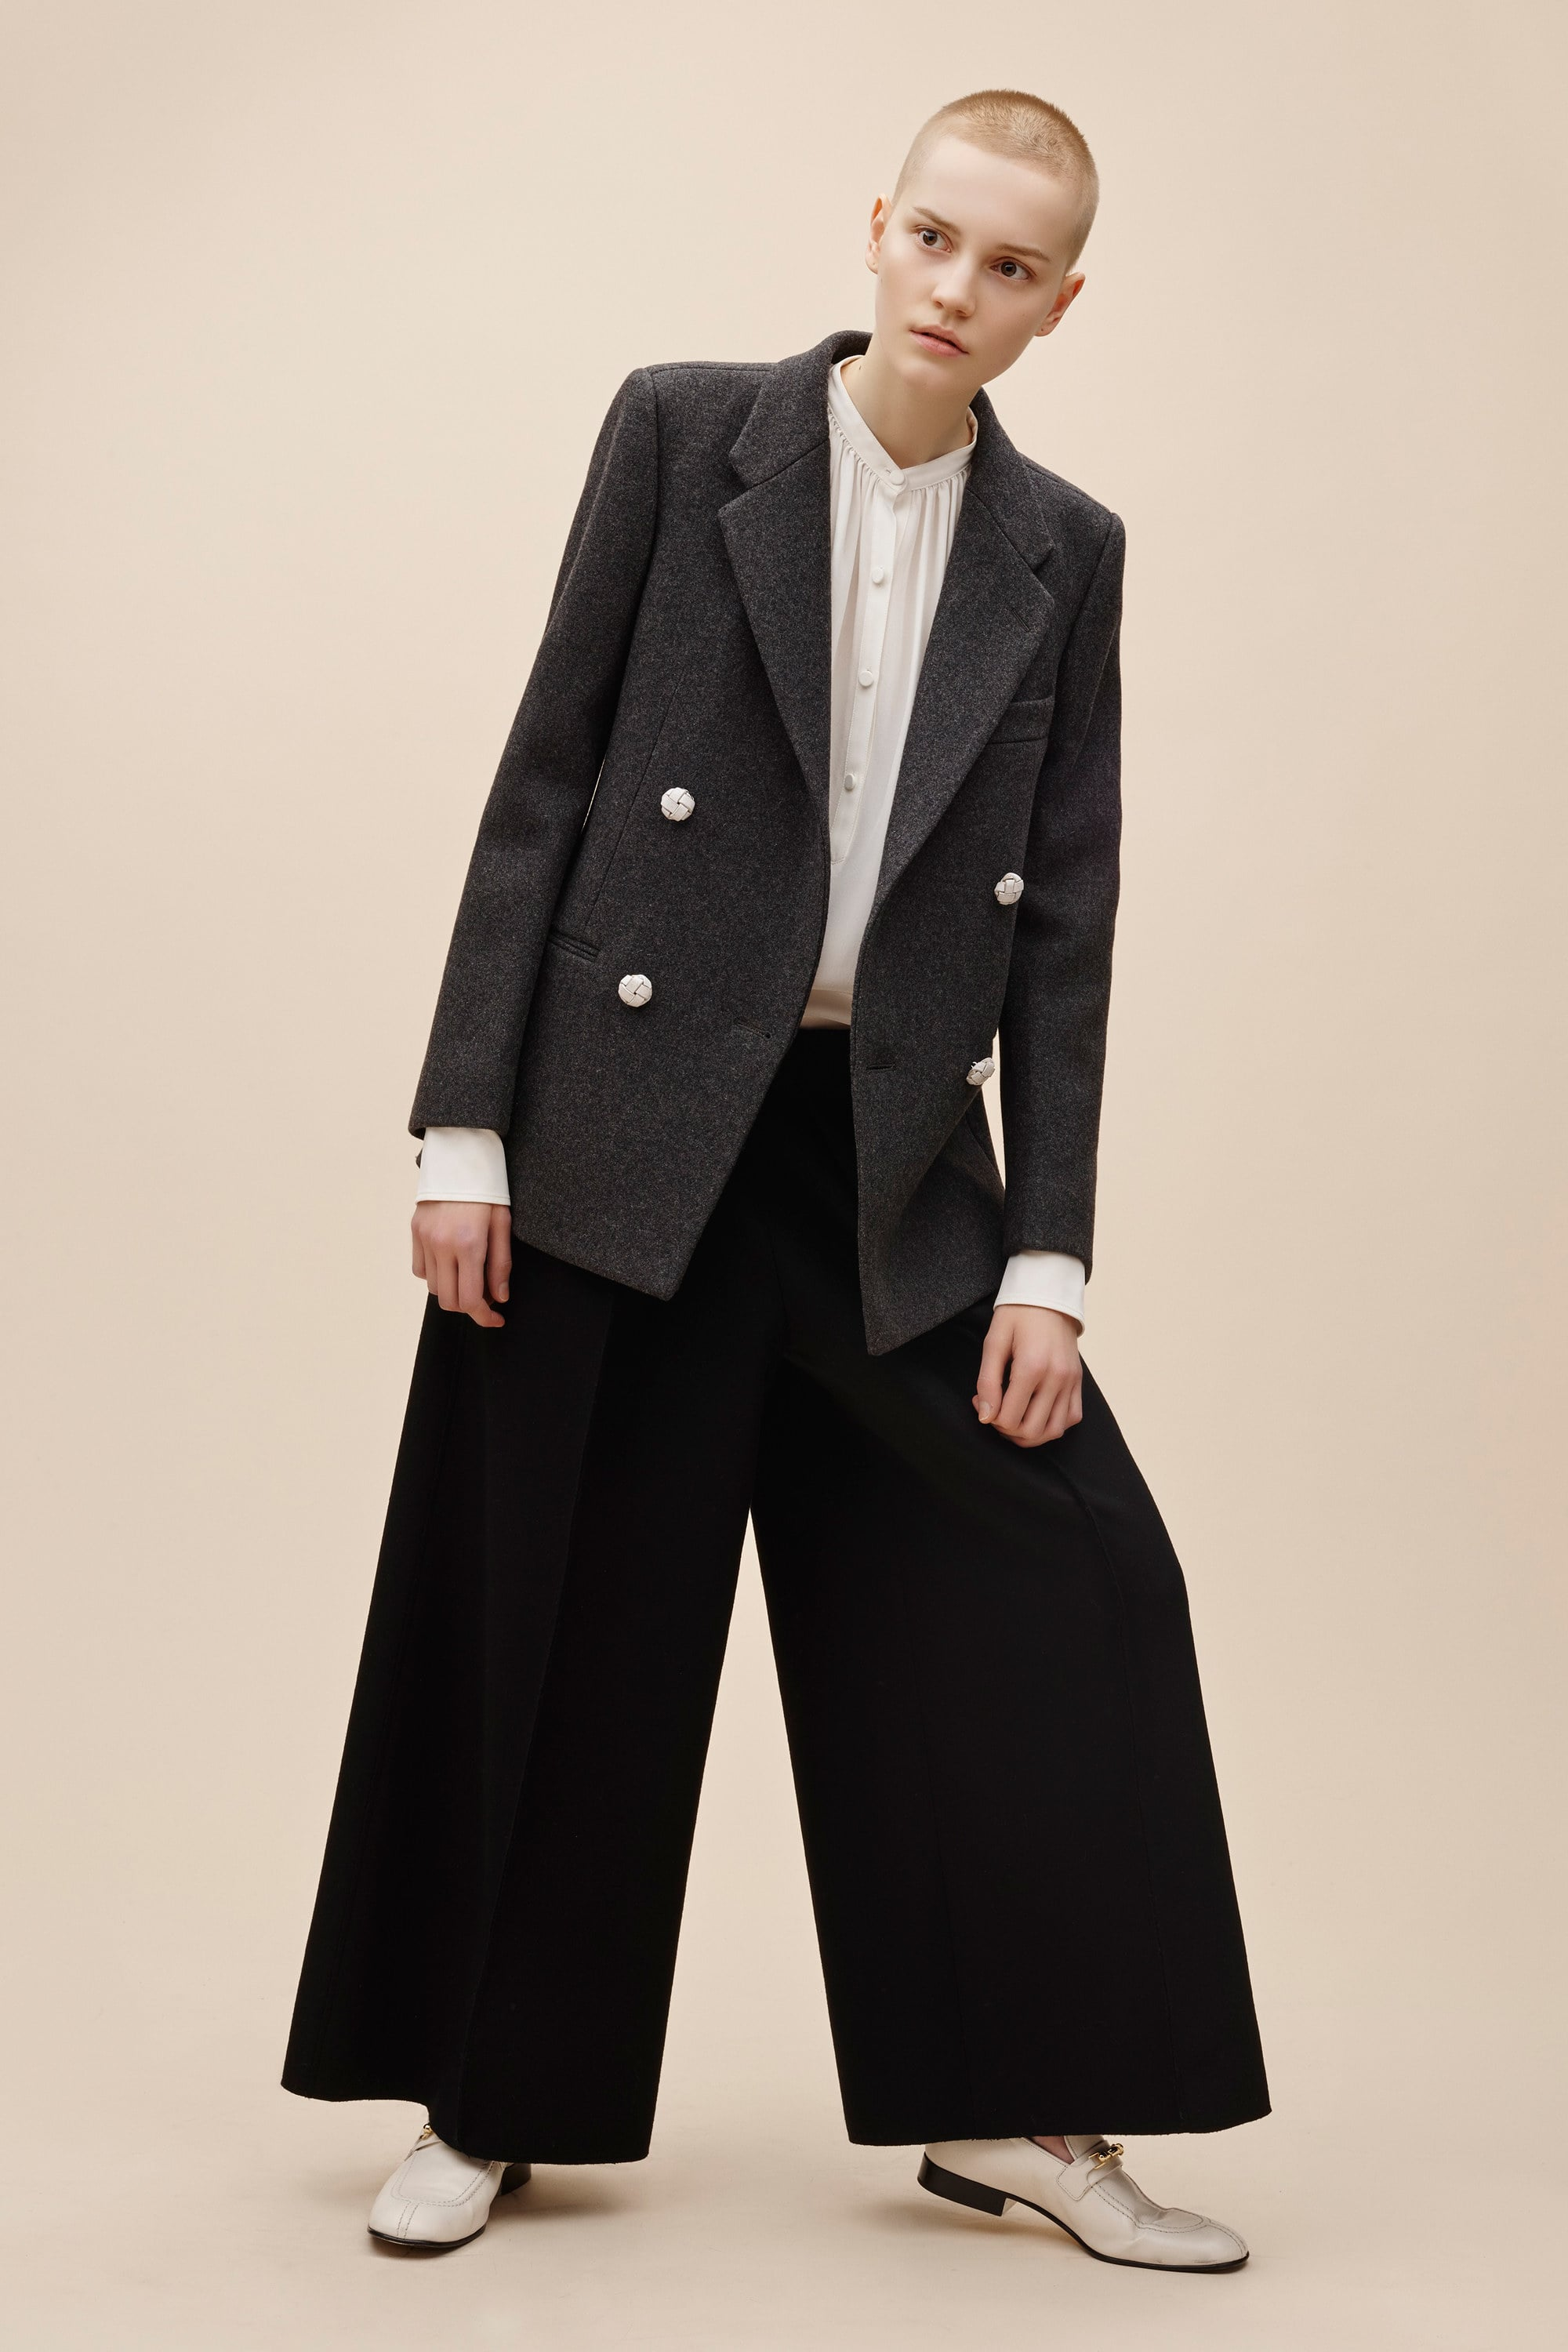 joseph-pre-fall-2016-lookbook-25.jpg